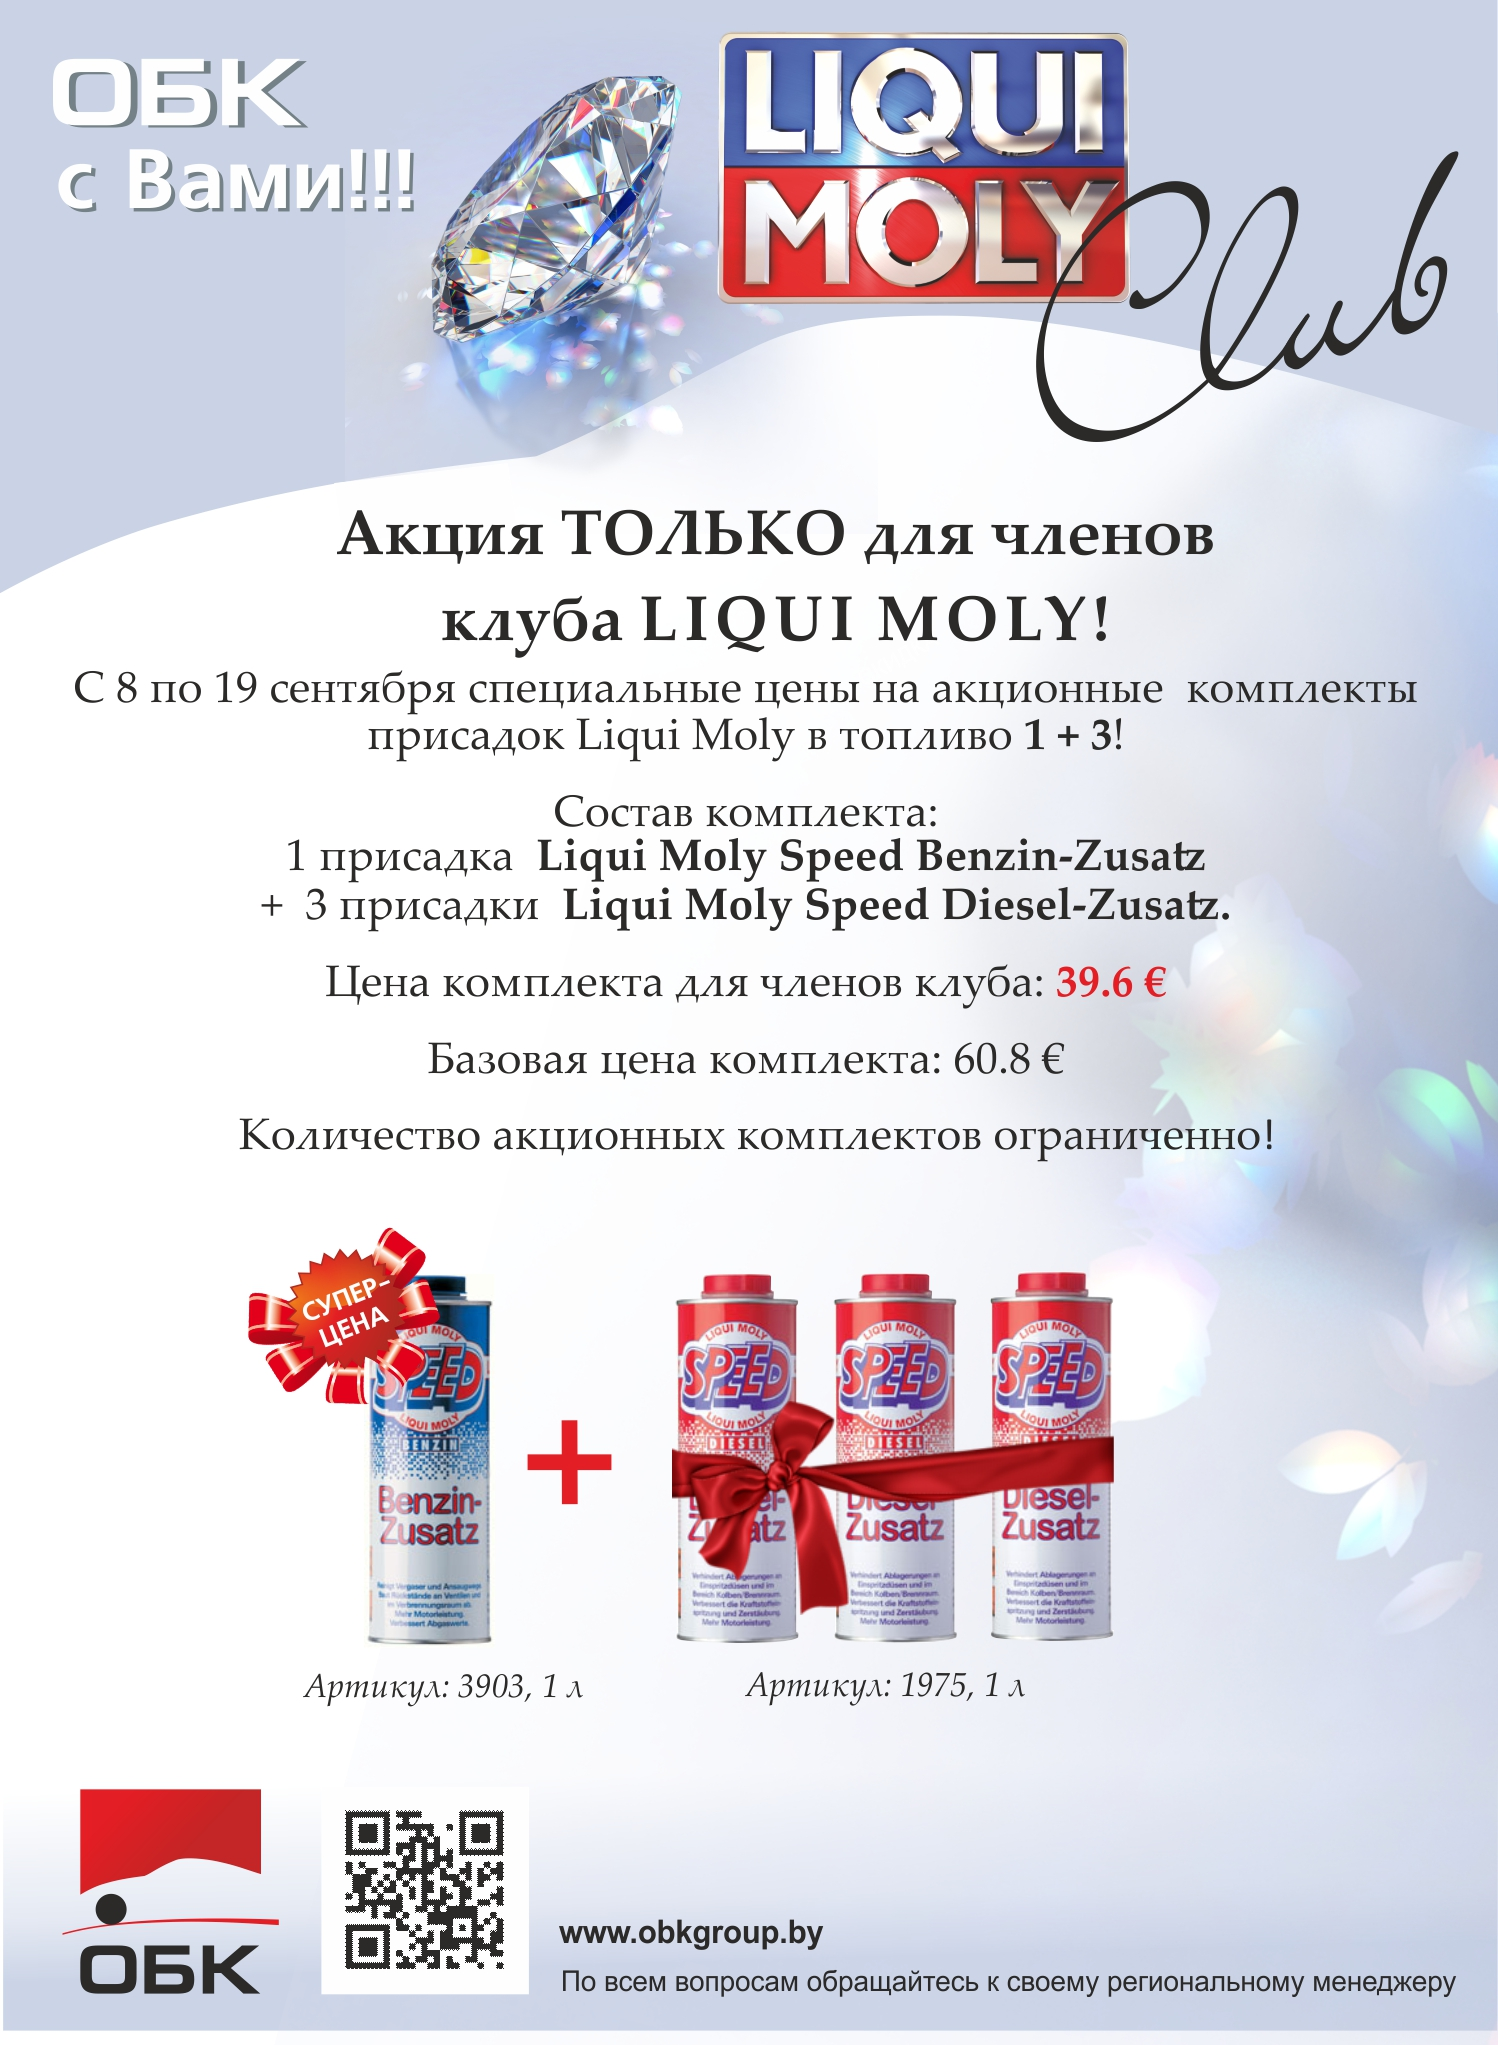 Акция для членов Liqui Moly Club